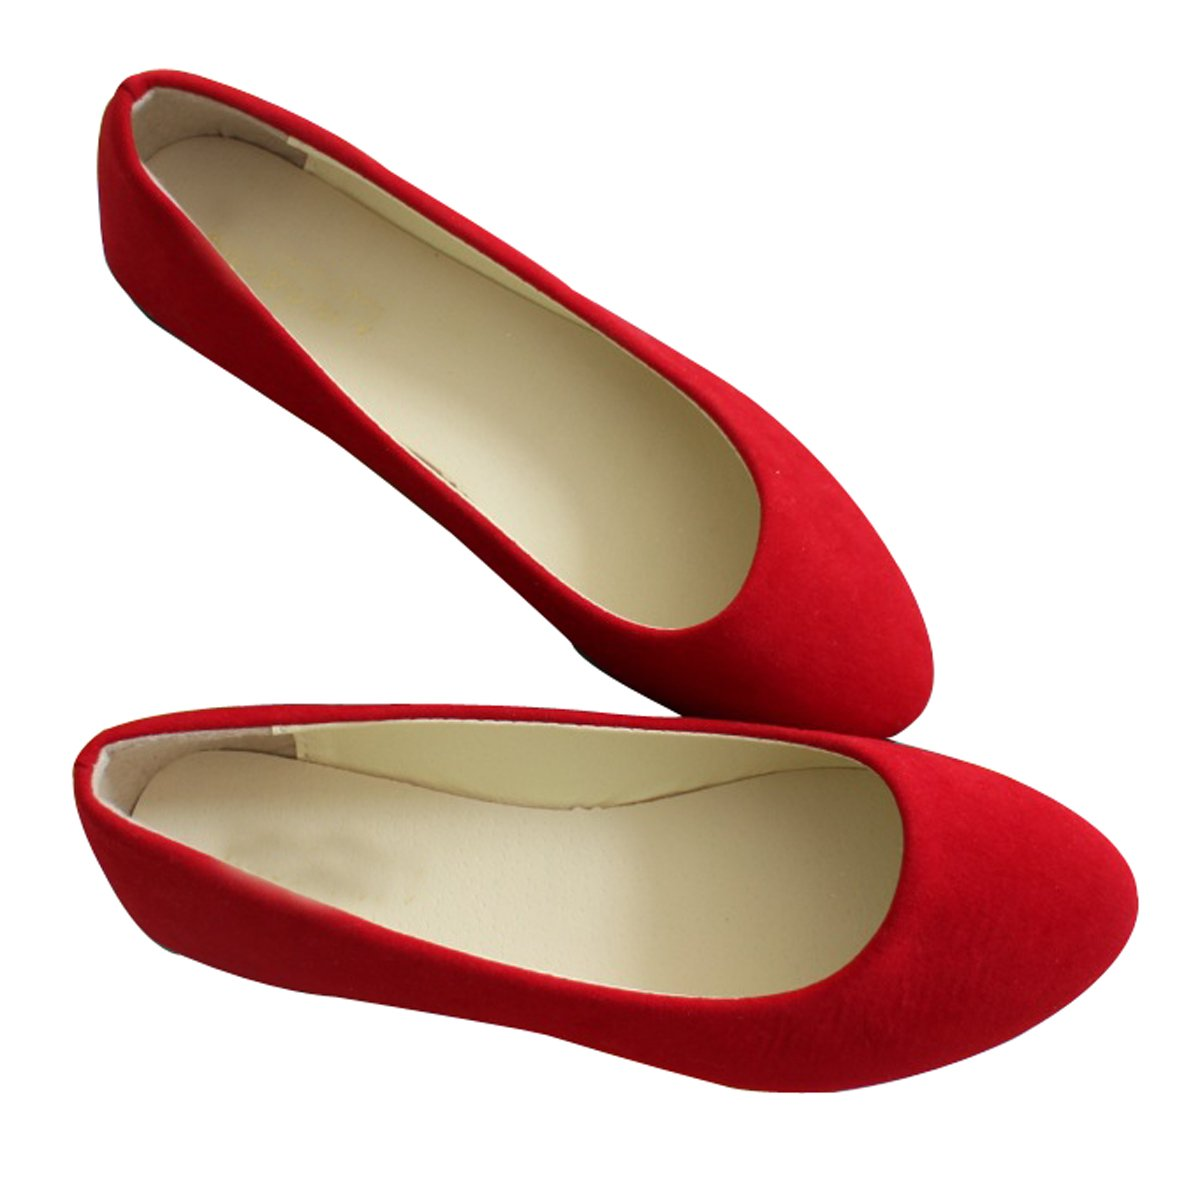 Stunner Women Cute Slip-On Ballet Shoes Soft Solid Classic Pointed Toe Flats by Red 40